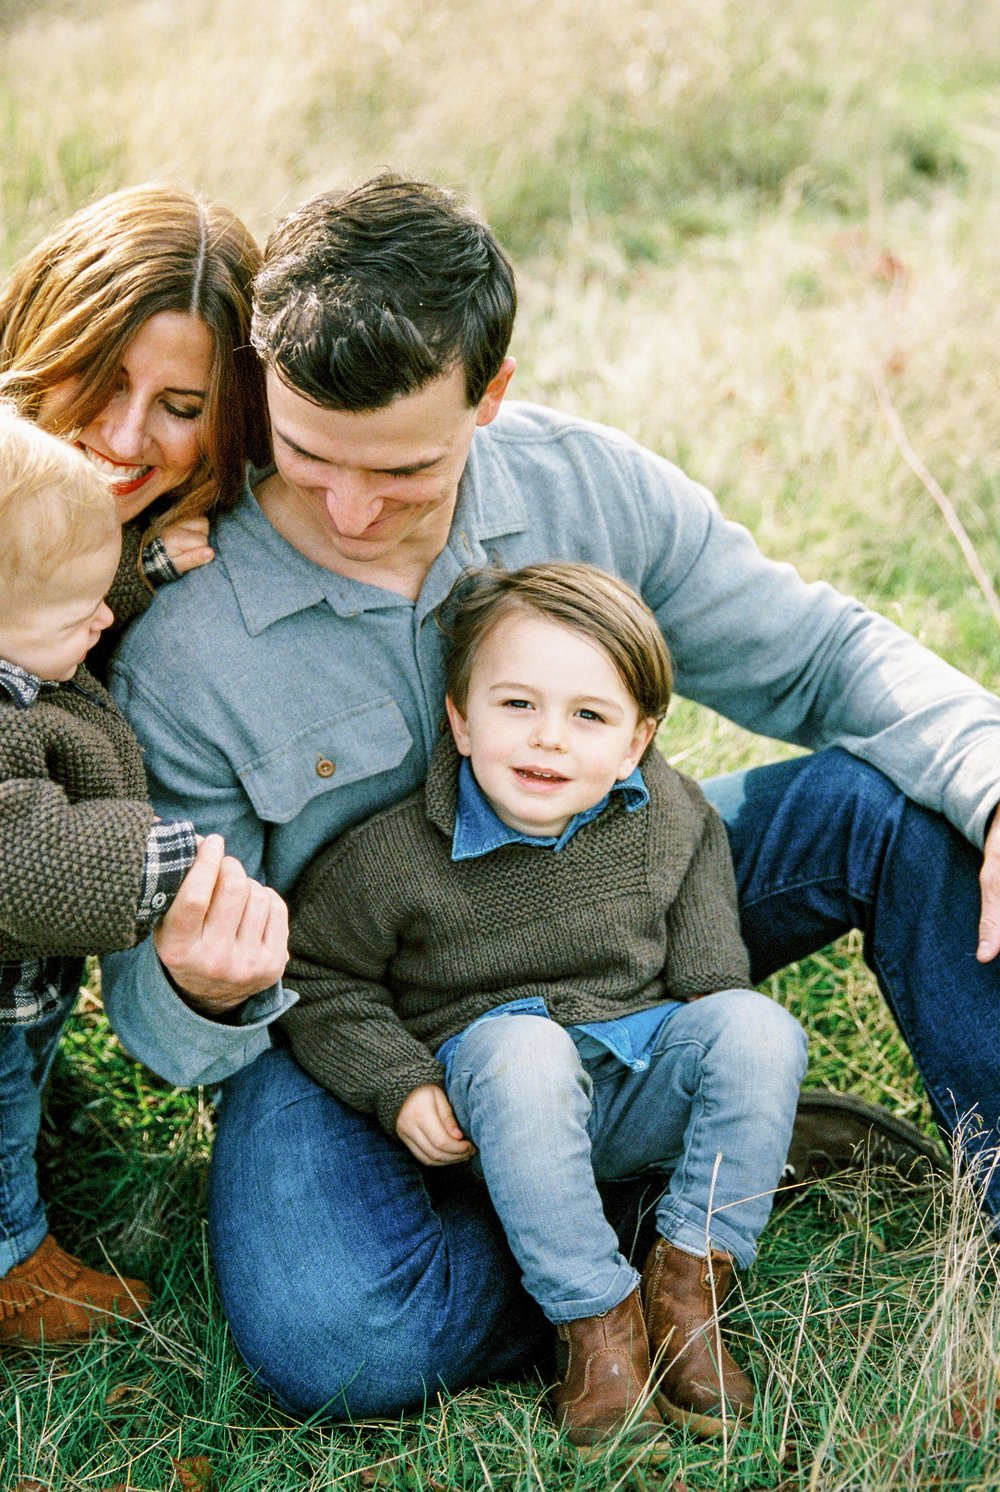 seattle family photographer photo discovery park children child kids kid mom dad brother double exposure film kodak portra 400 35mm pudget sound most popular top best rated photographer rachael kruse photography meg kilcup